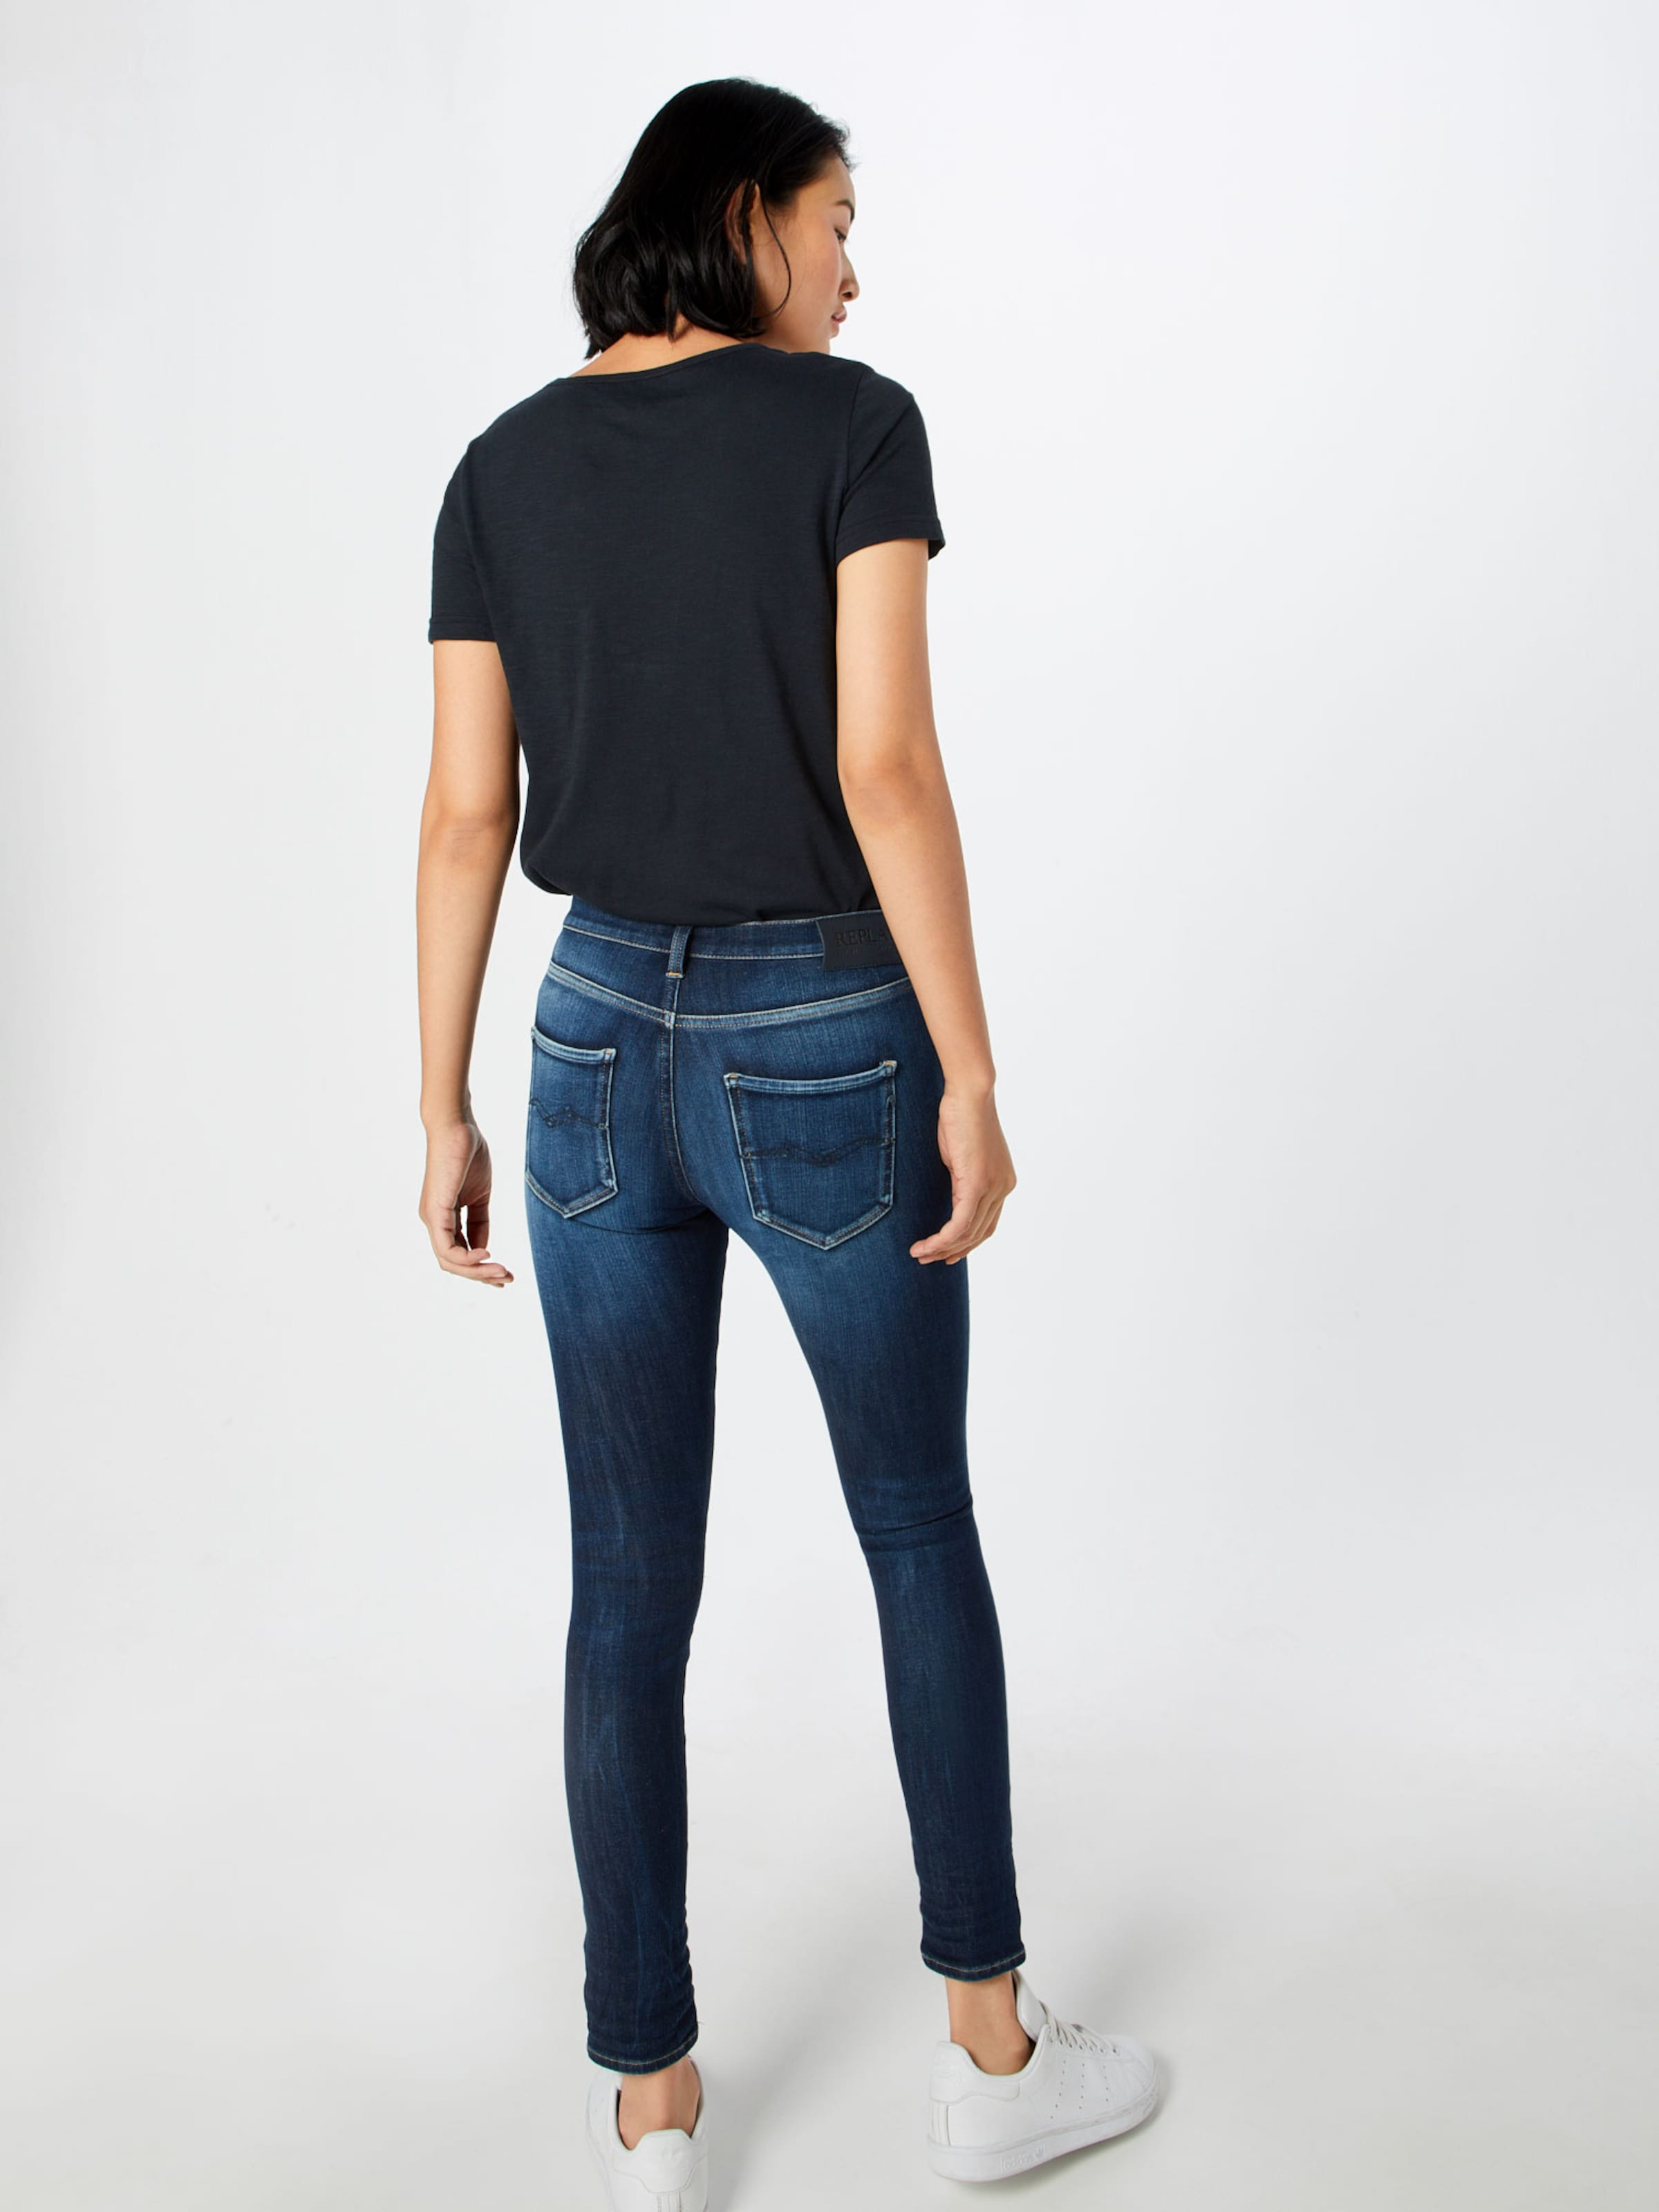 Blue Replay 'stella Hose Denim In Hyperflex' wnOXPk80